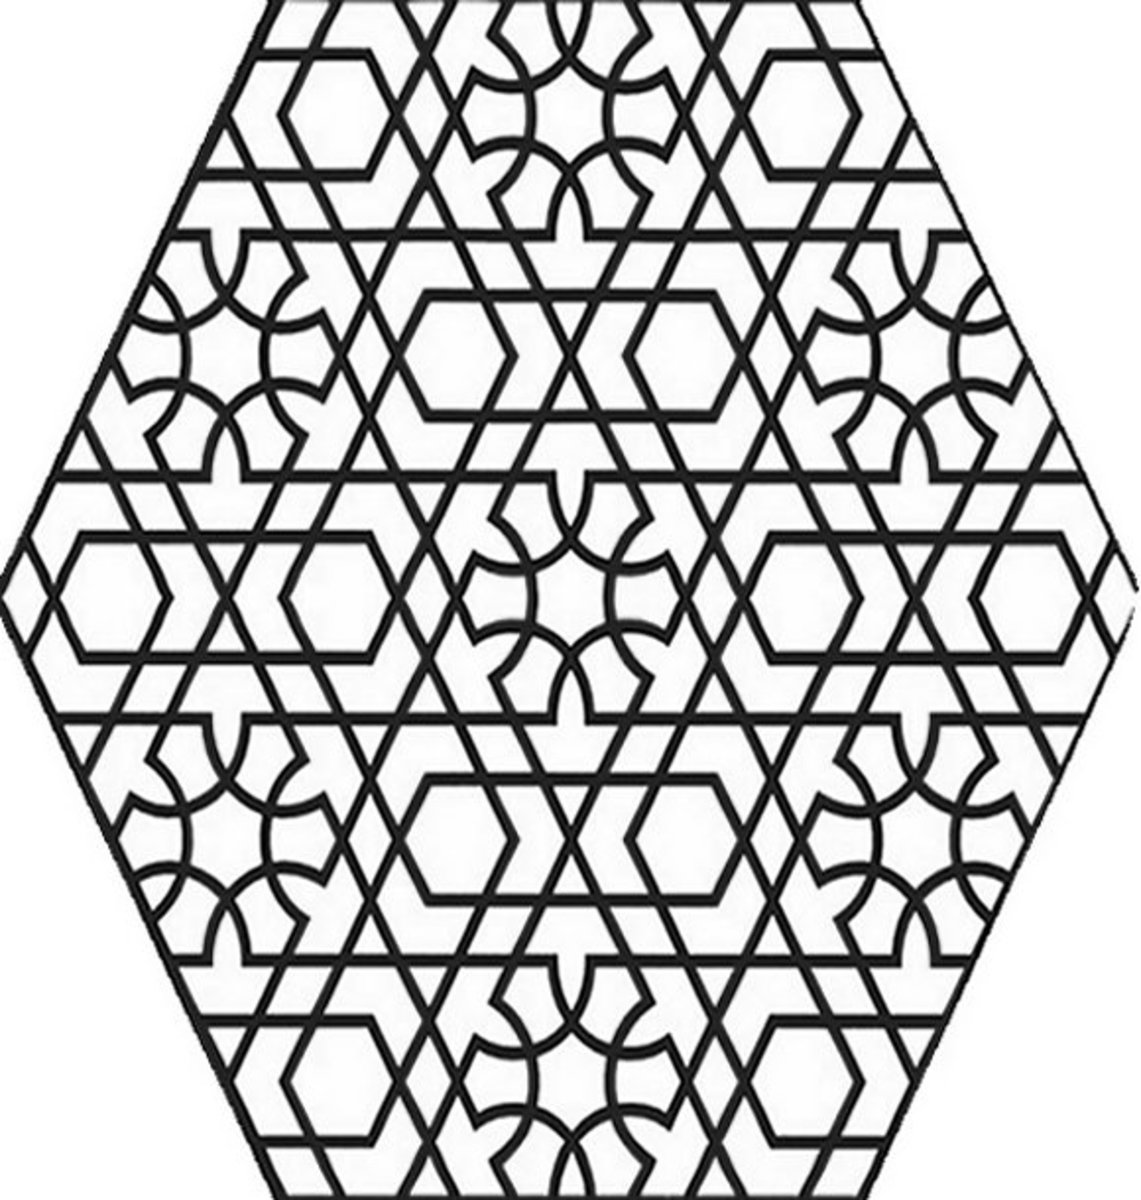 coloring pages geometric staind glass - photo#13